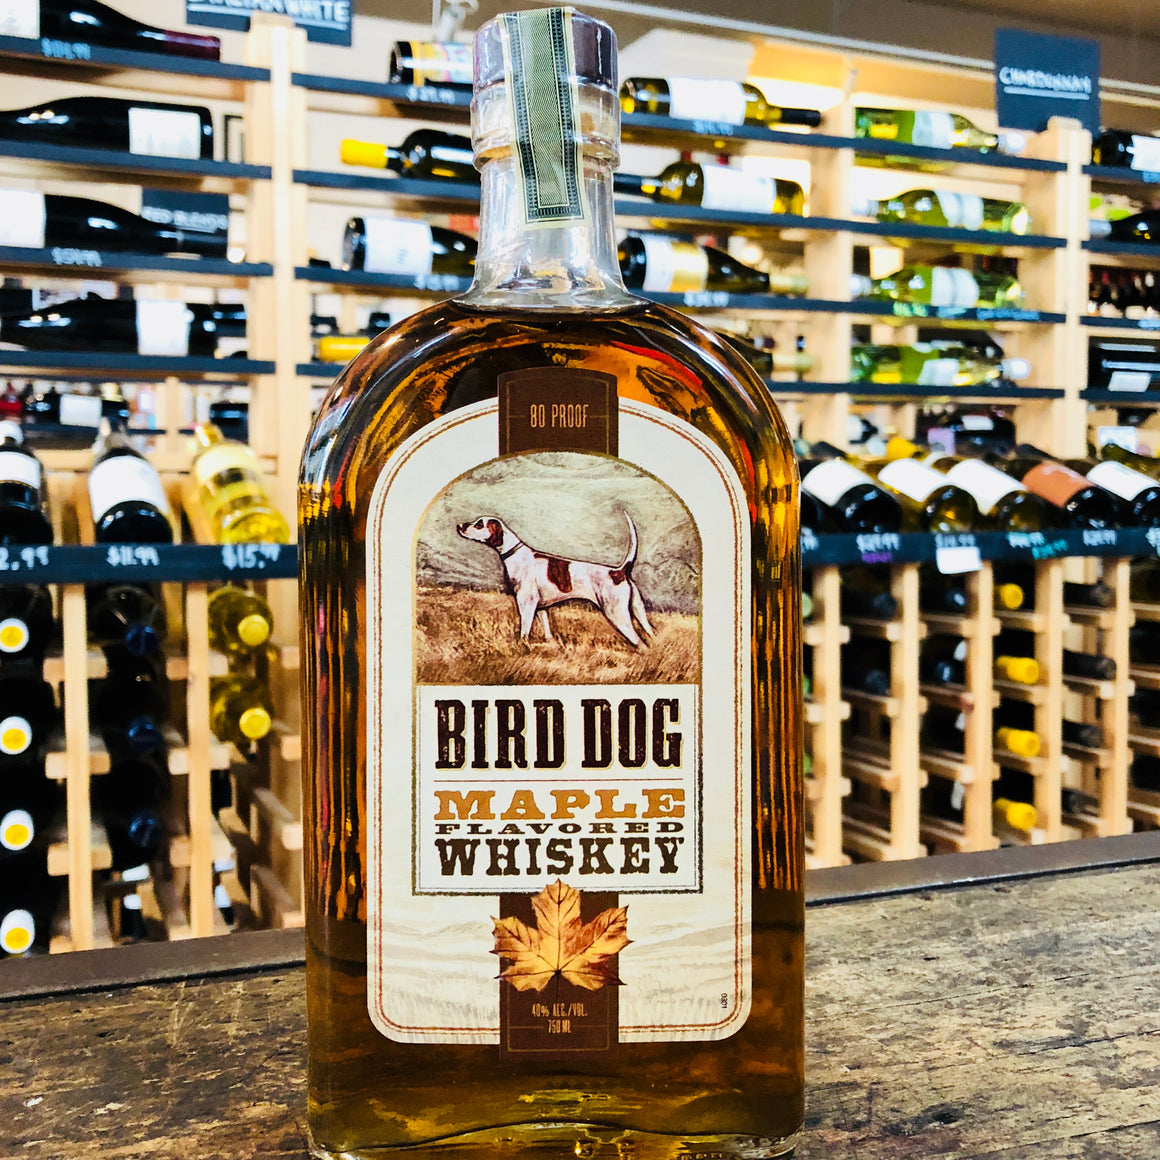 BIRD DOG MAPLE WHISKEY 750ML